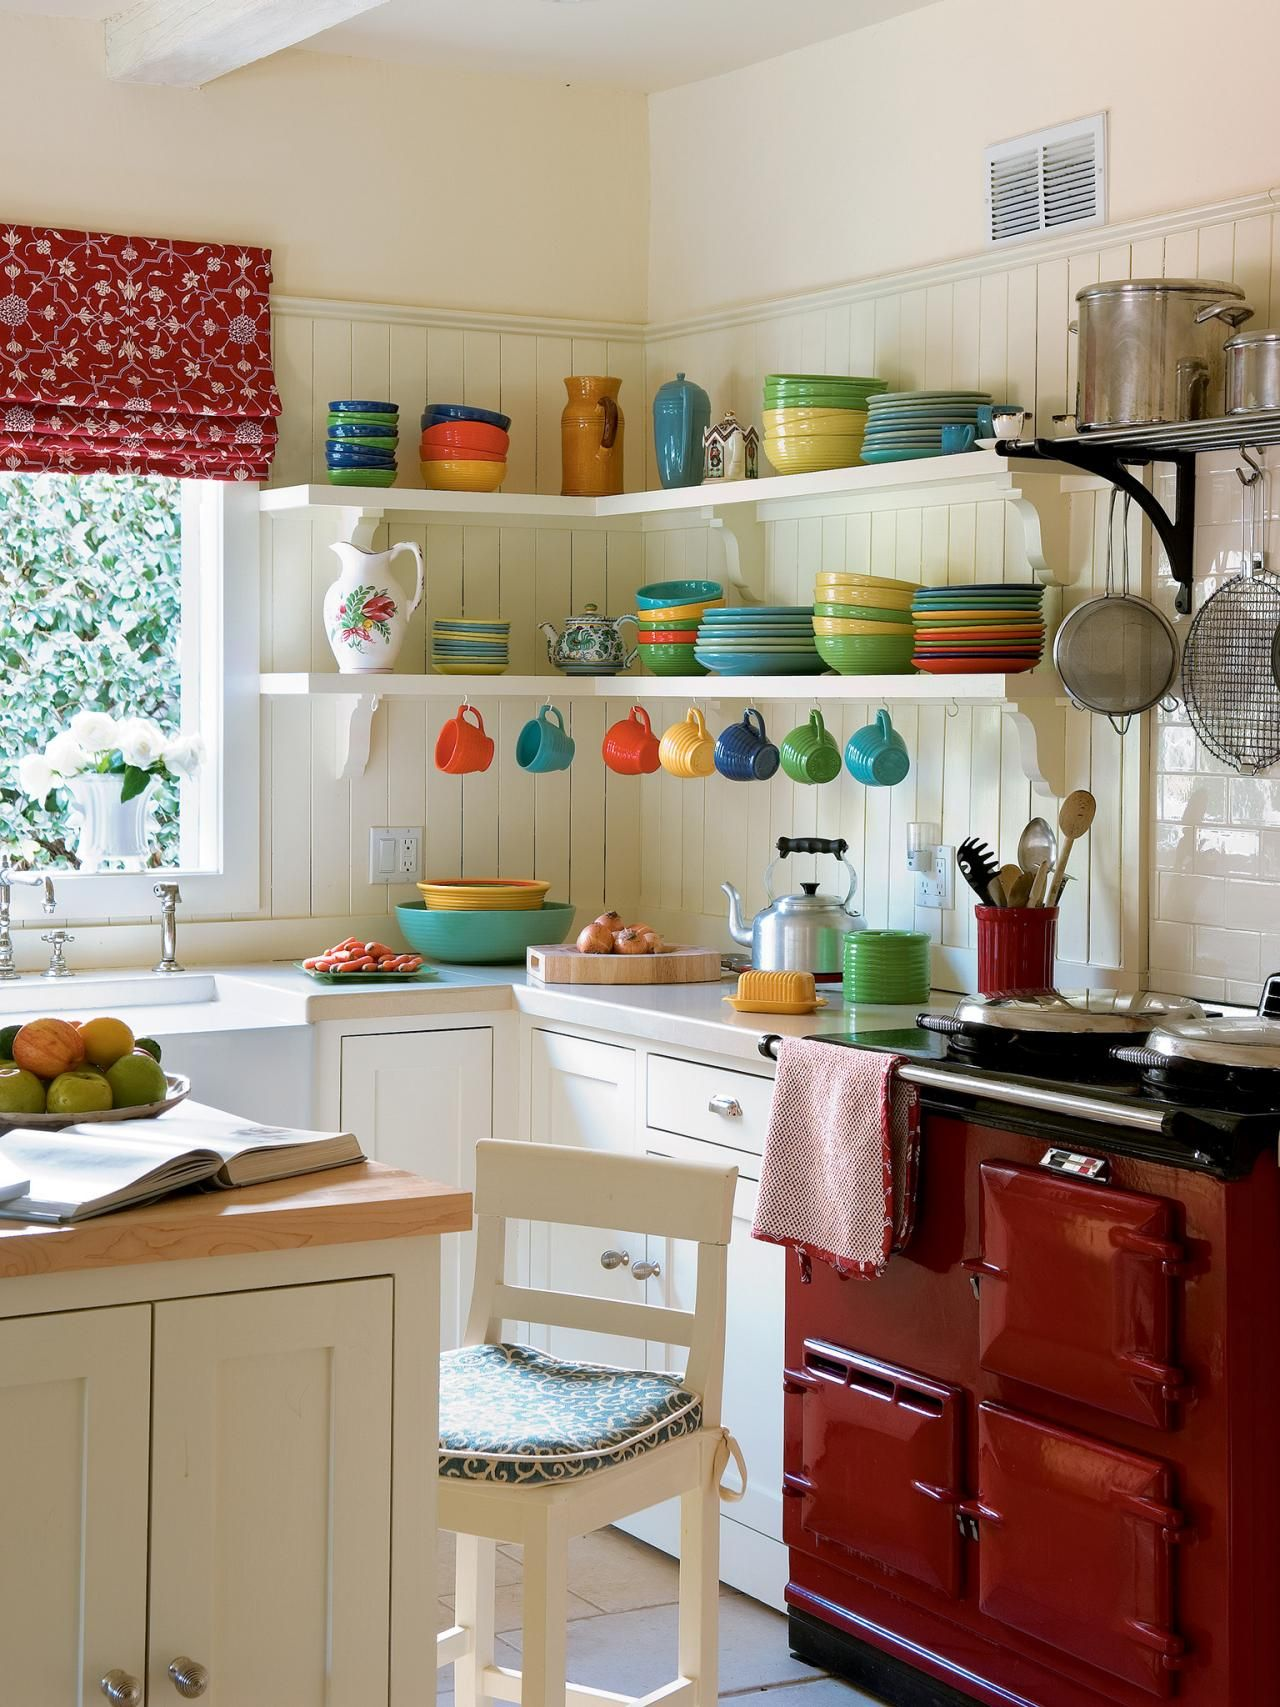 Small Kitchen Design Ideas Photo Kitchensmall. Sliding Kitchen Cabinet. Better Arrangement with Sliding Kitchen Cabinets Vertical Sliding. Kitchen Pull Out Drawers Underneath You Can Open Up The Two Doors